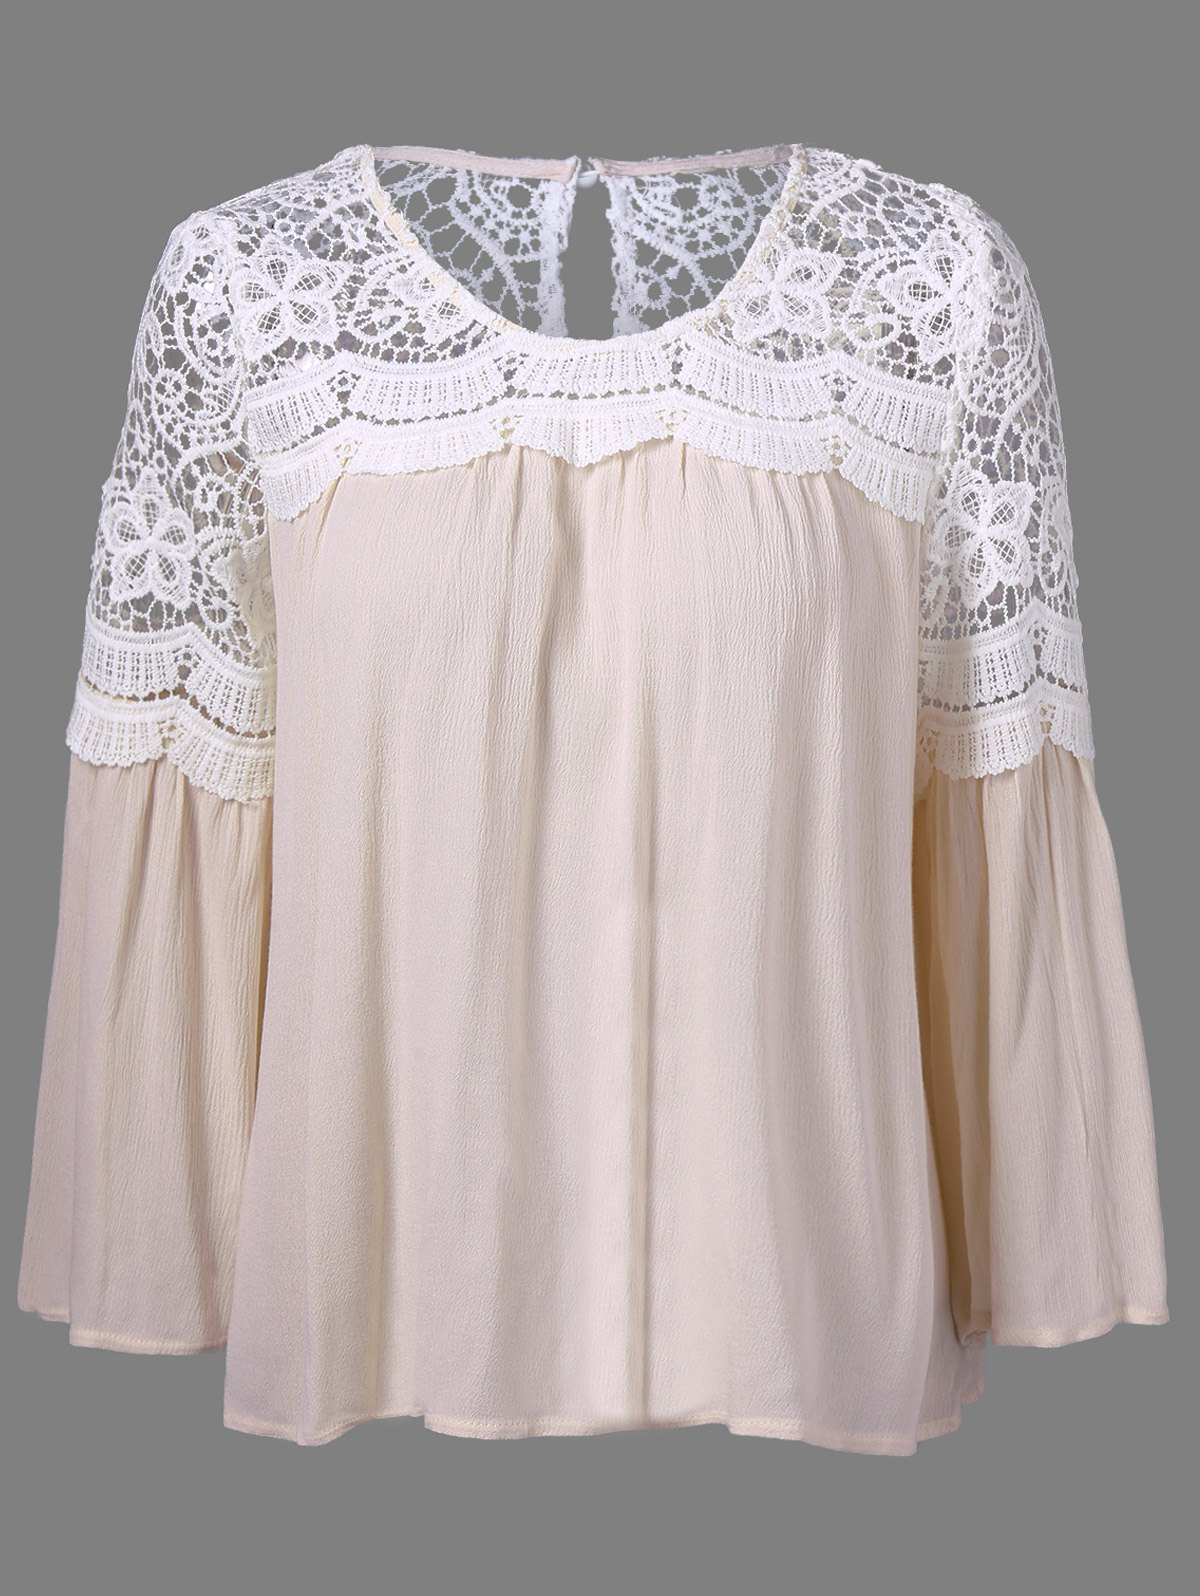 Bell Sleeve Lace Panel Flowy Blouse chelsea verde hippie chic boho flowy poncho blouse shirt